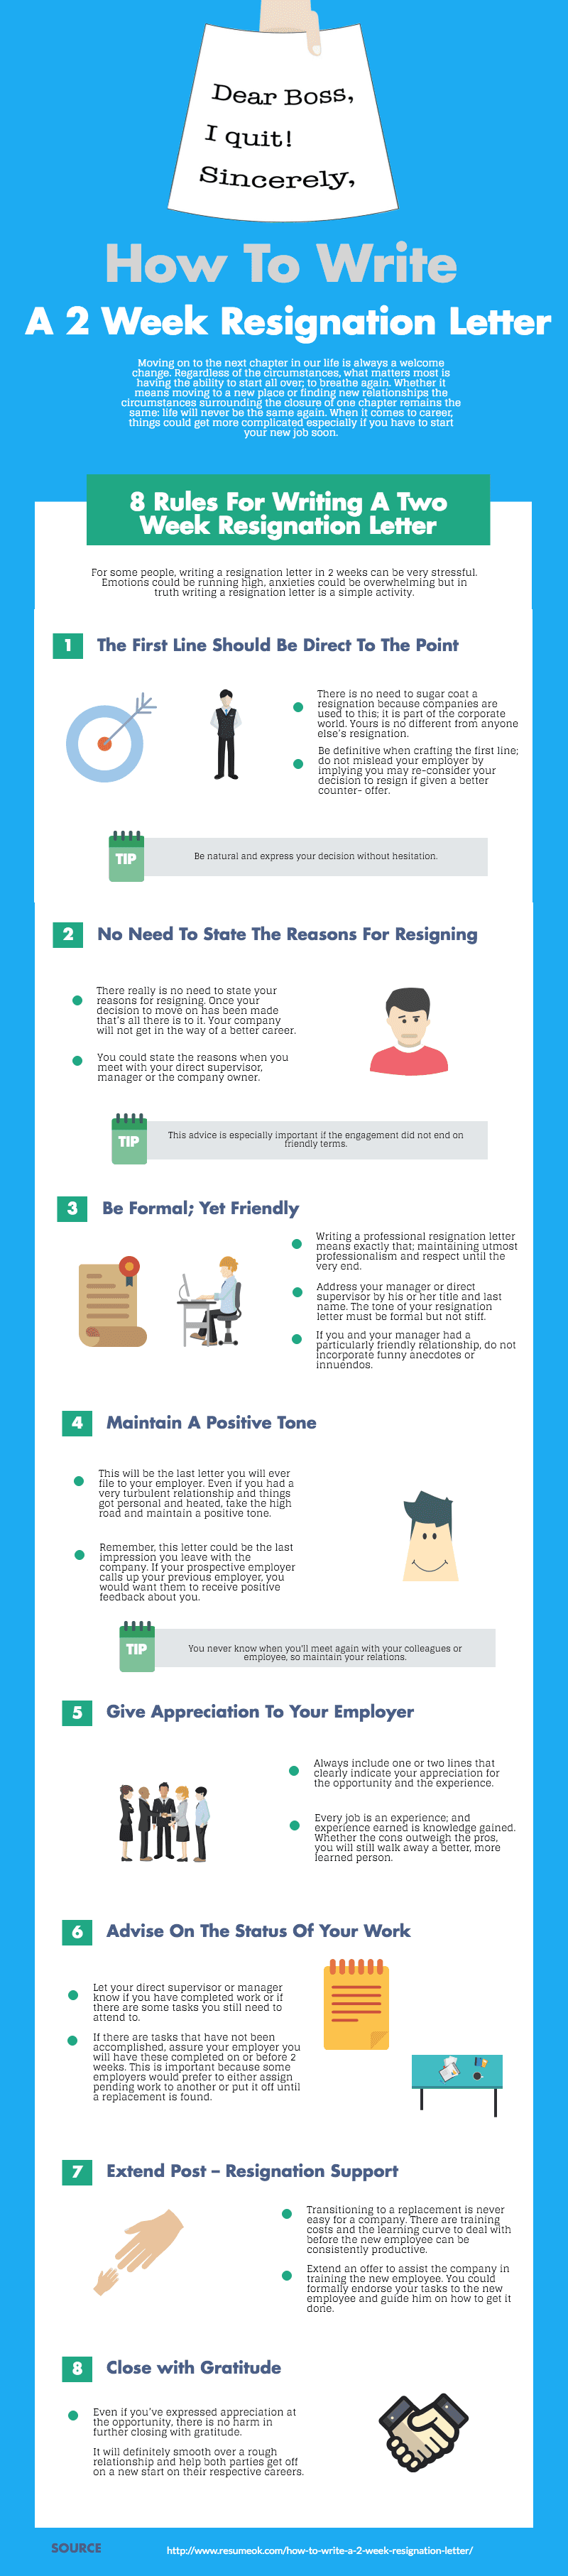 How To Write A  Week Resignation Letter Infographic  Job